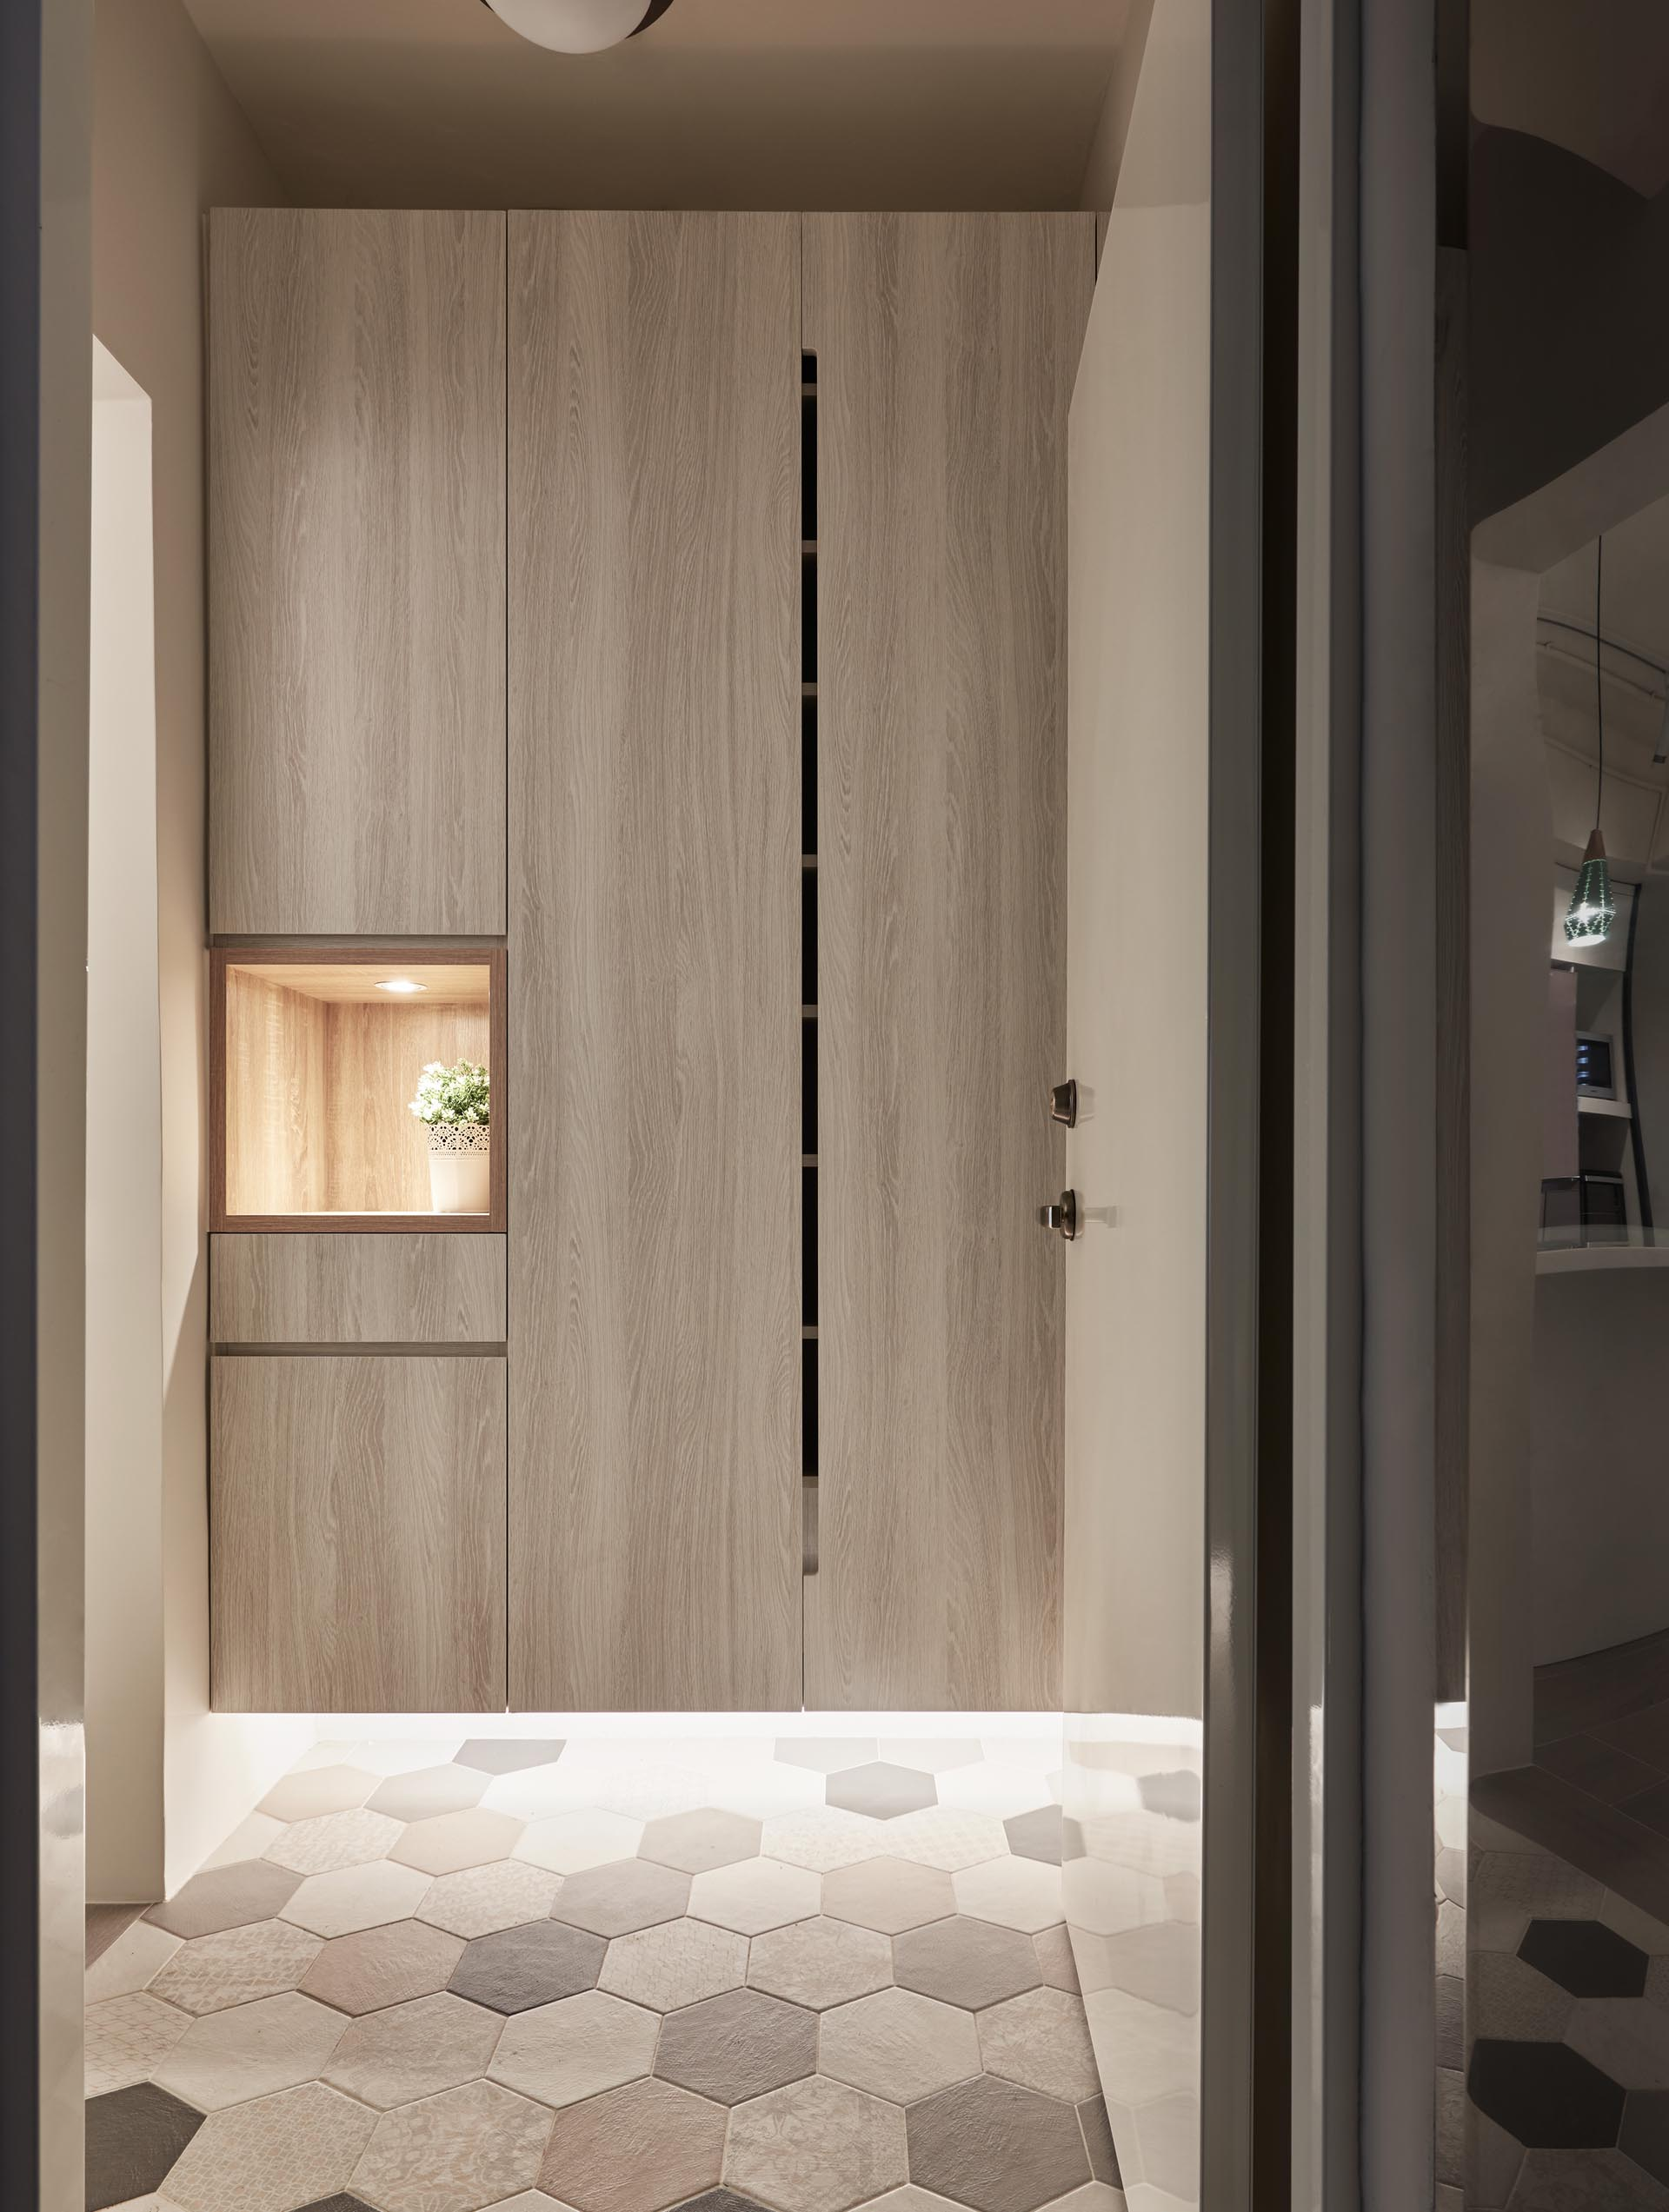 The entryway has tall storage closets that float above a tiled floor, that's highlighted with the use of hidden LED lights. A small open shelf with a light is an ideal place for keys and wallets.